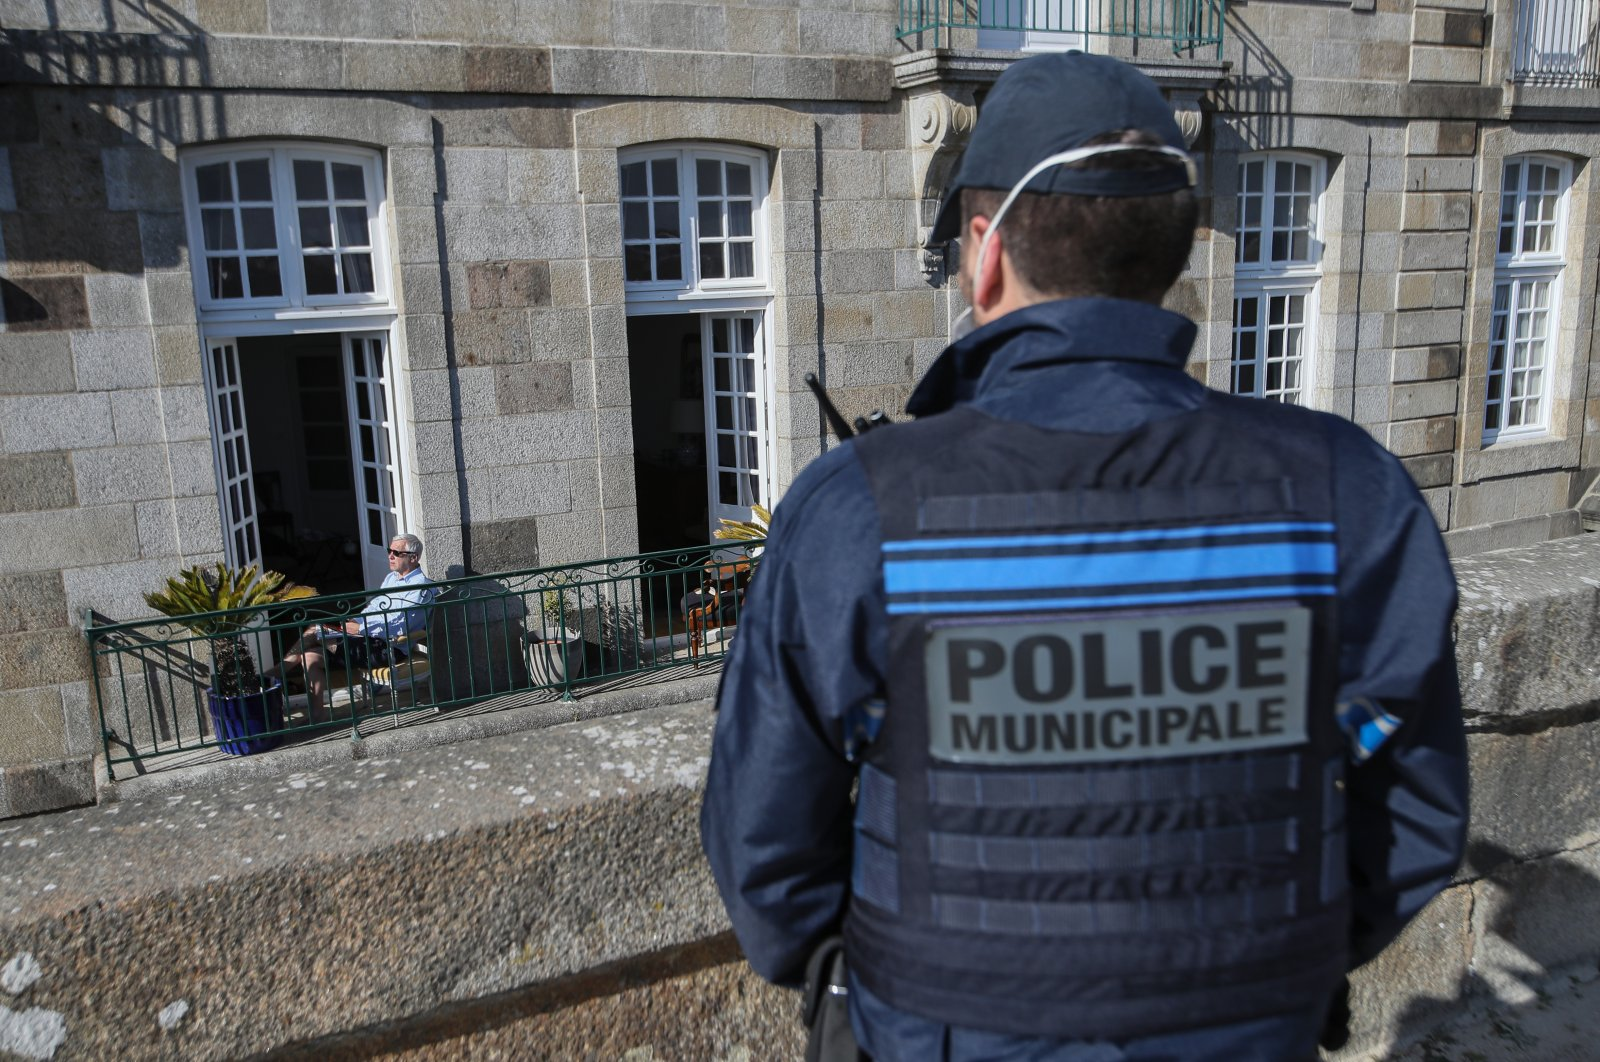 A man reads a book on his sunny terrace's apartment as French police patrol the streets of Saint-Malo, western France, Friday, April 3, 2020. (AP Photo)